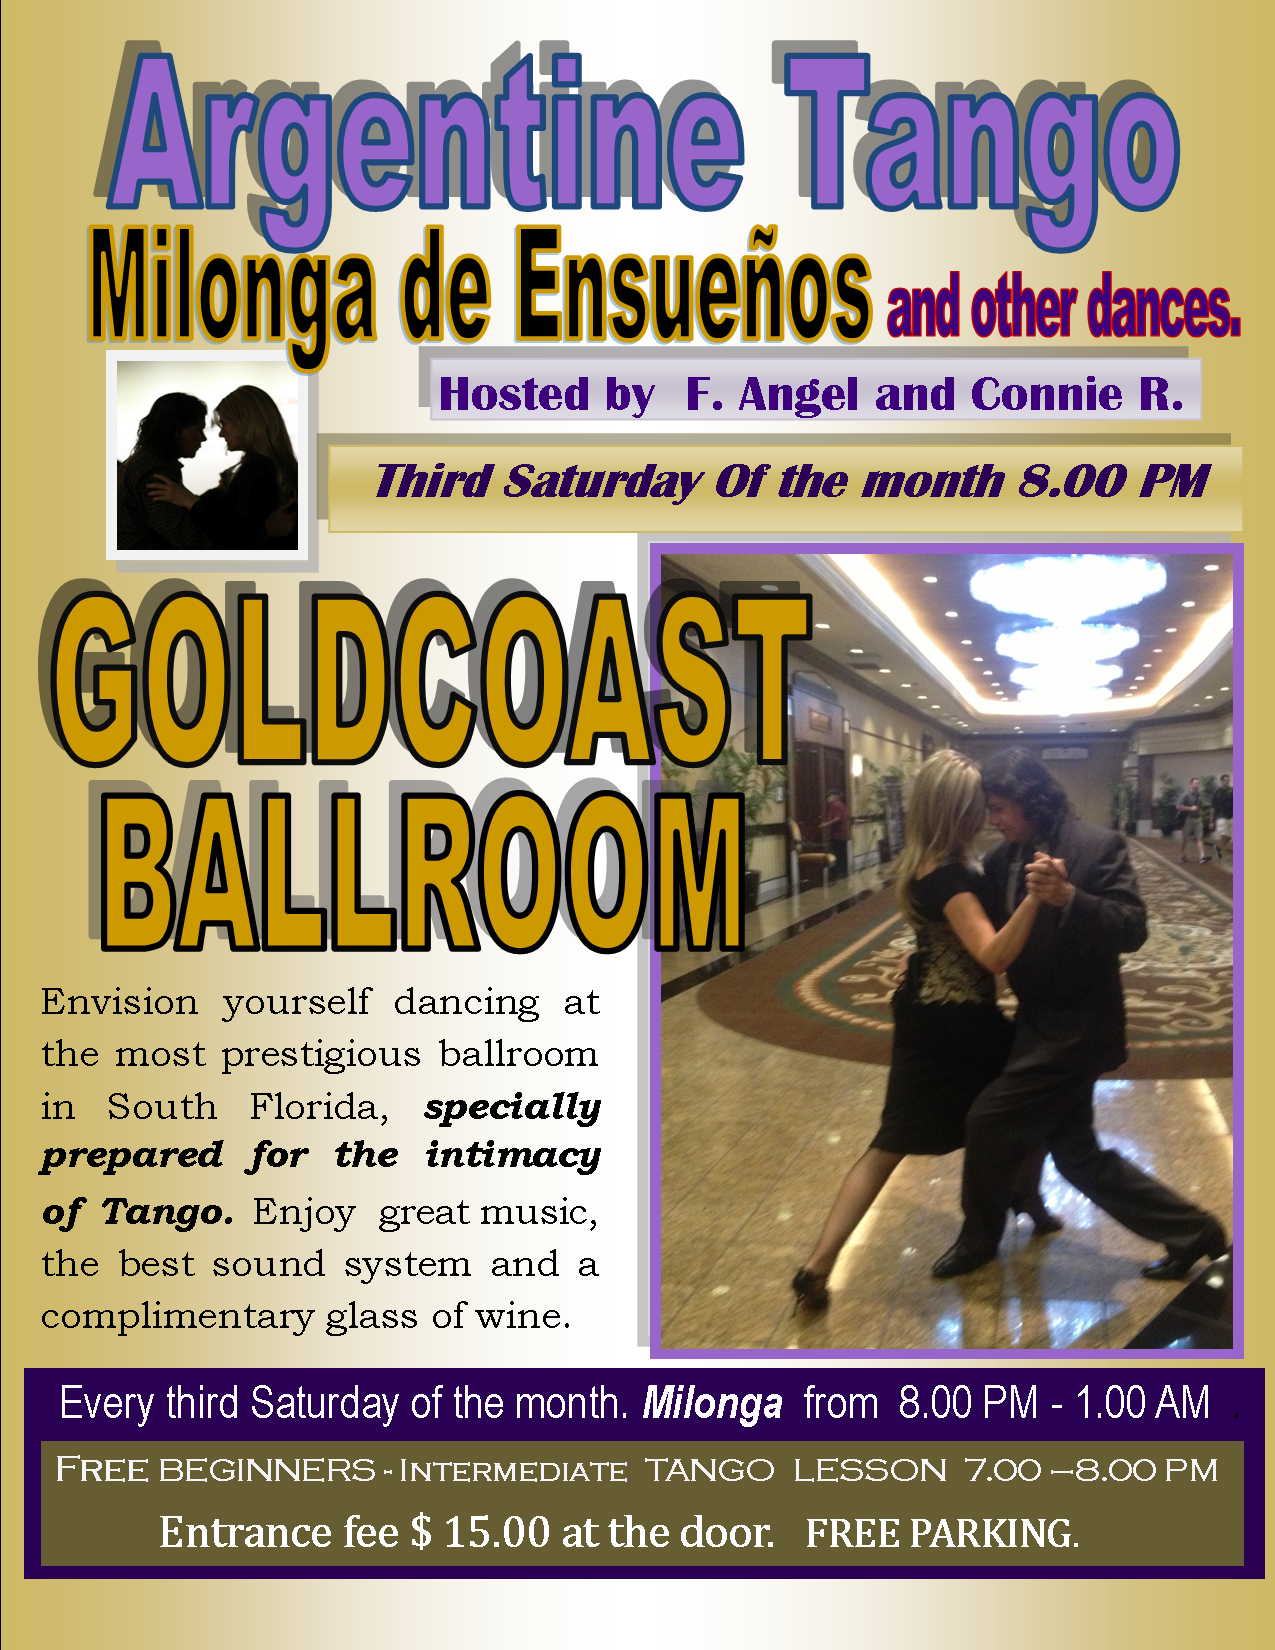 Milonga de Ensuenos – June 21, 2014 - at Goldcoast Ballroom